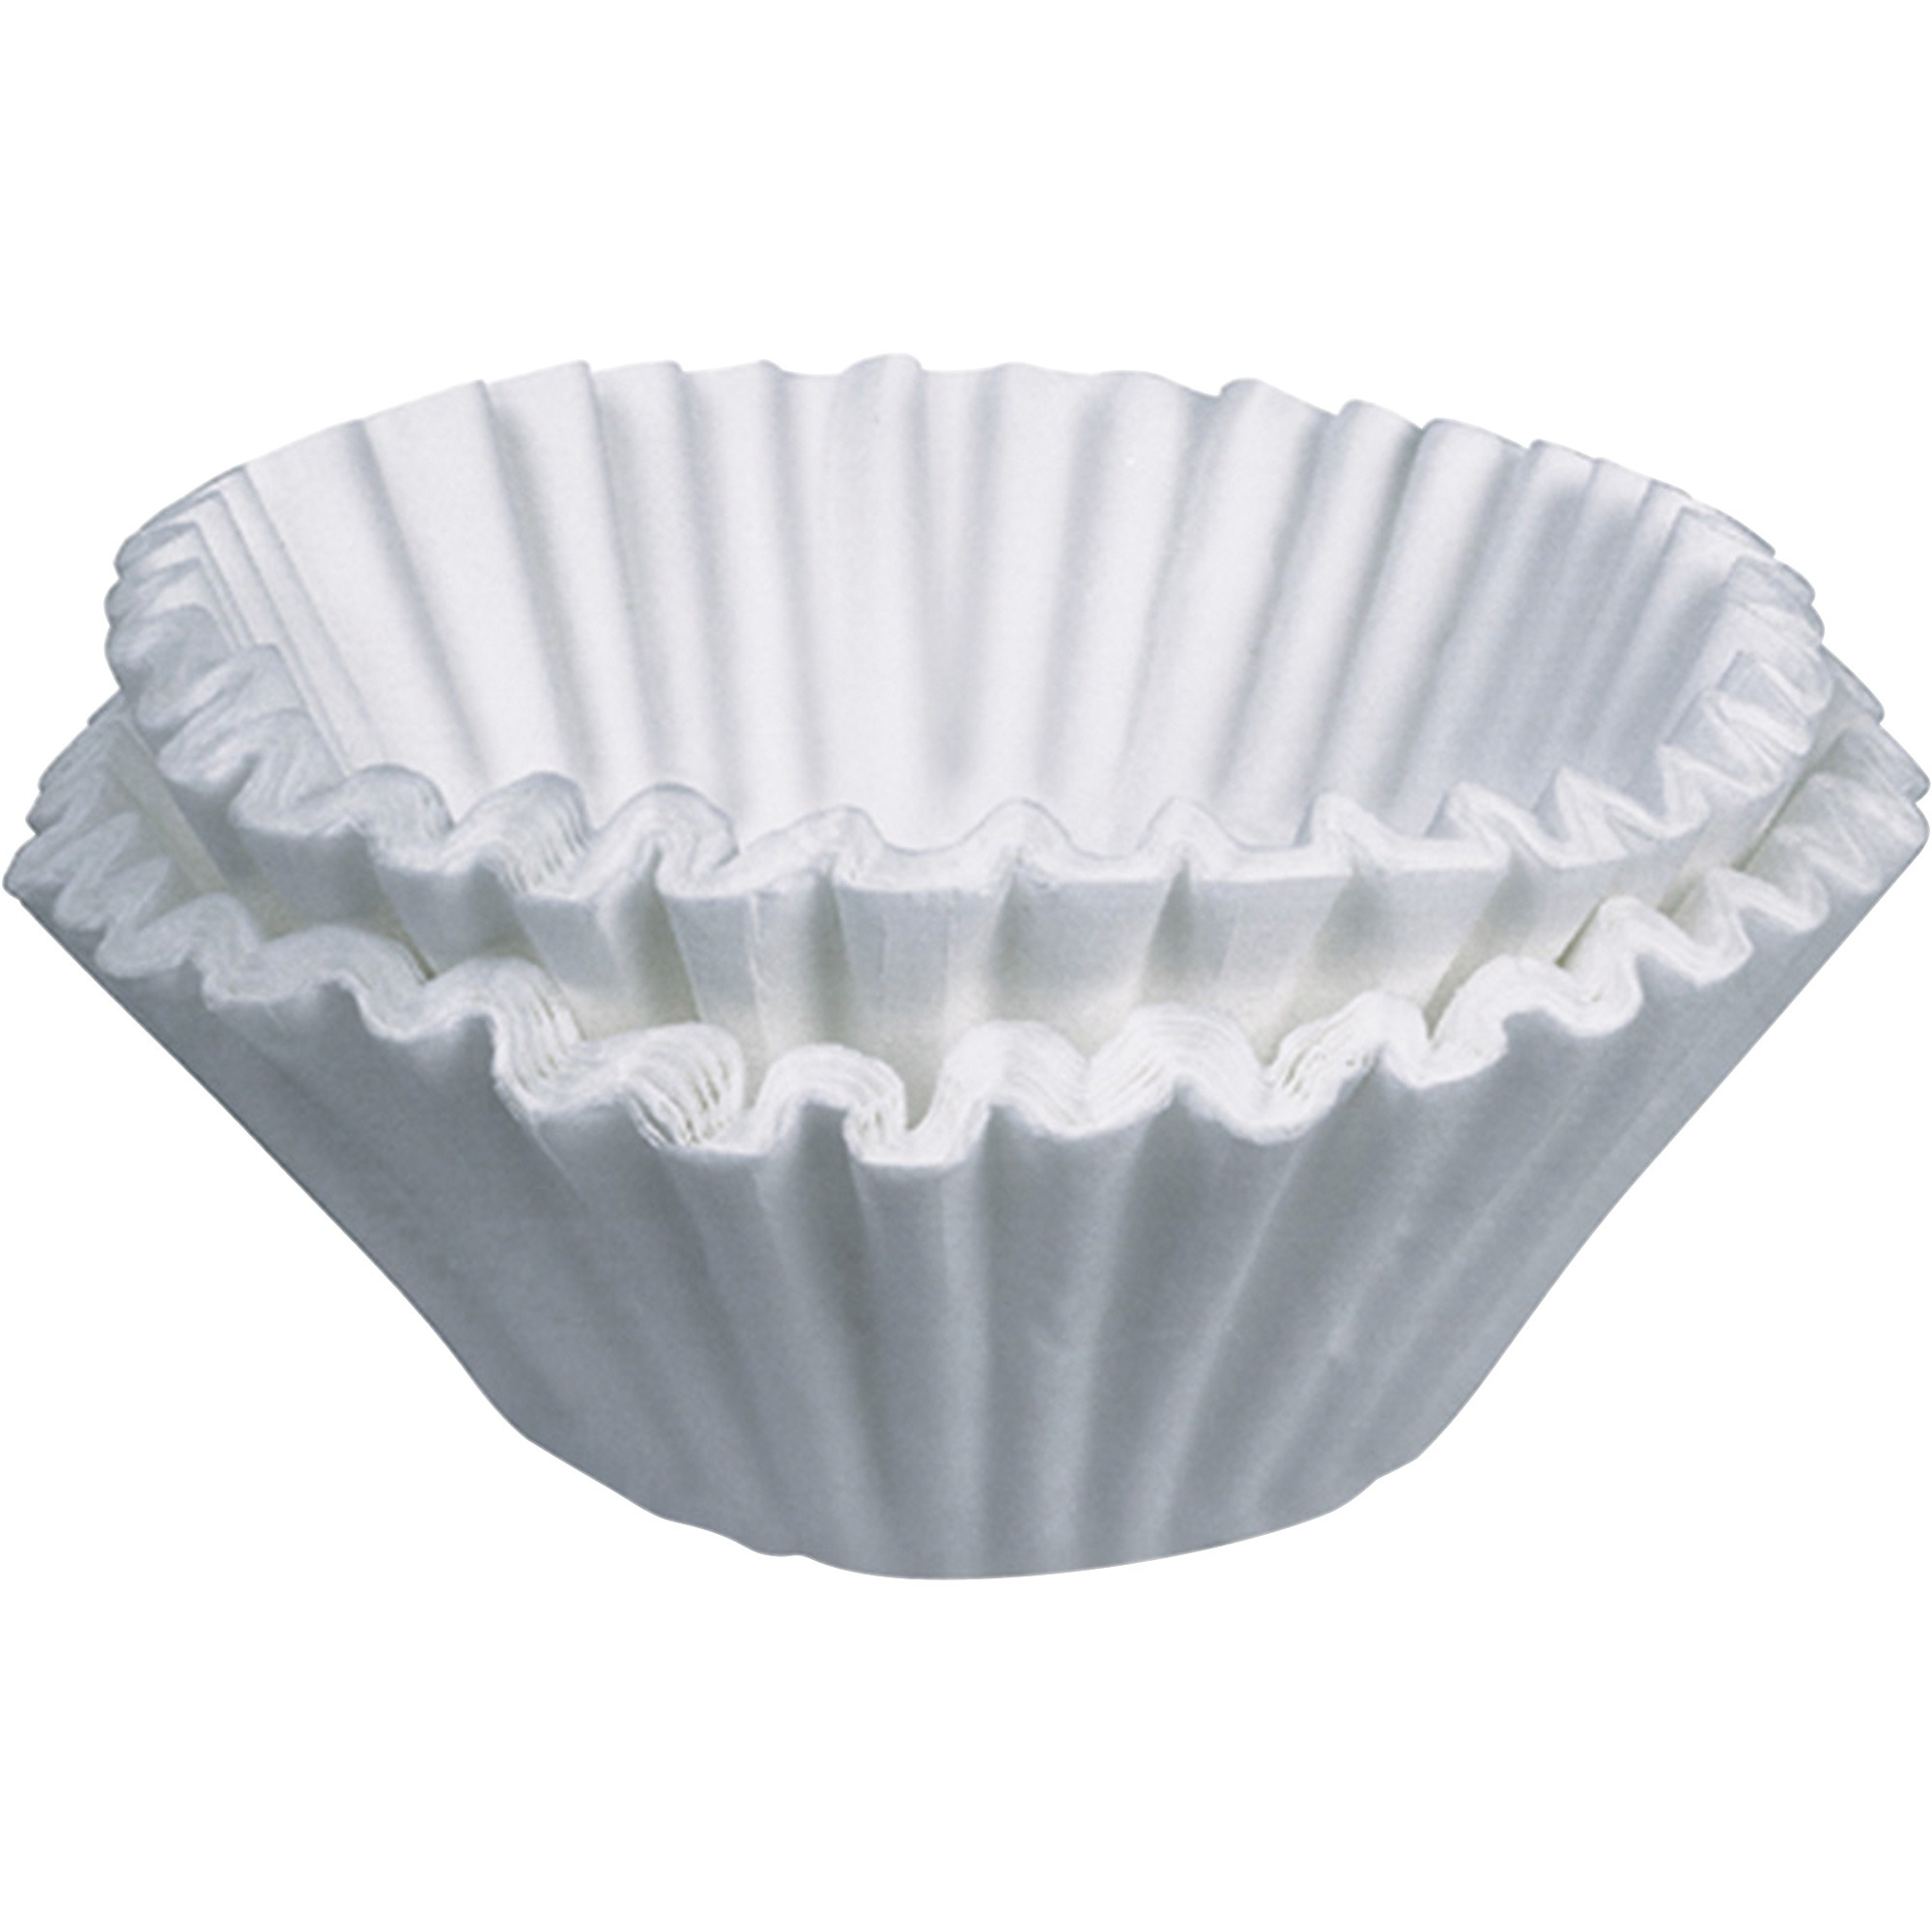 BUNN, BUNBCF250,Commercial Coffee Filters, 250   Box, White by Bunn-O-Matic Corporation